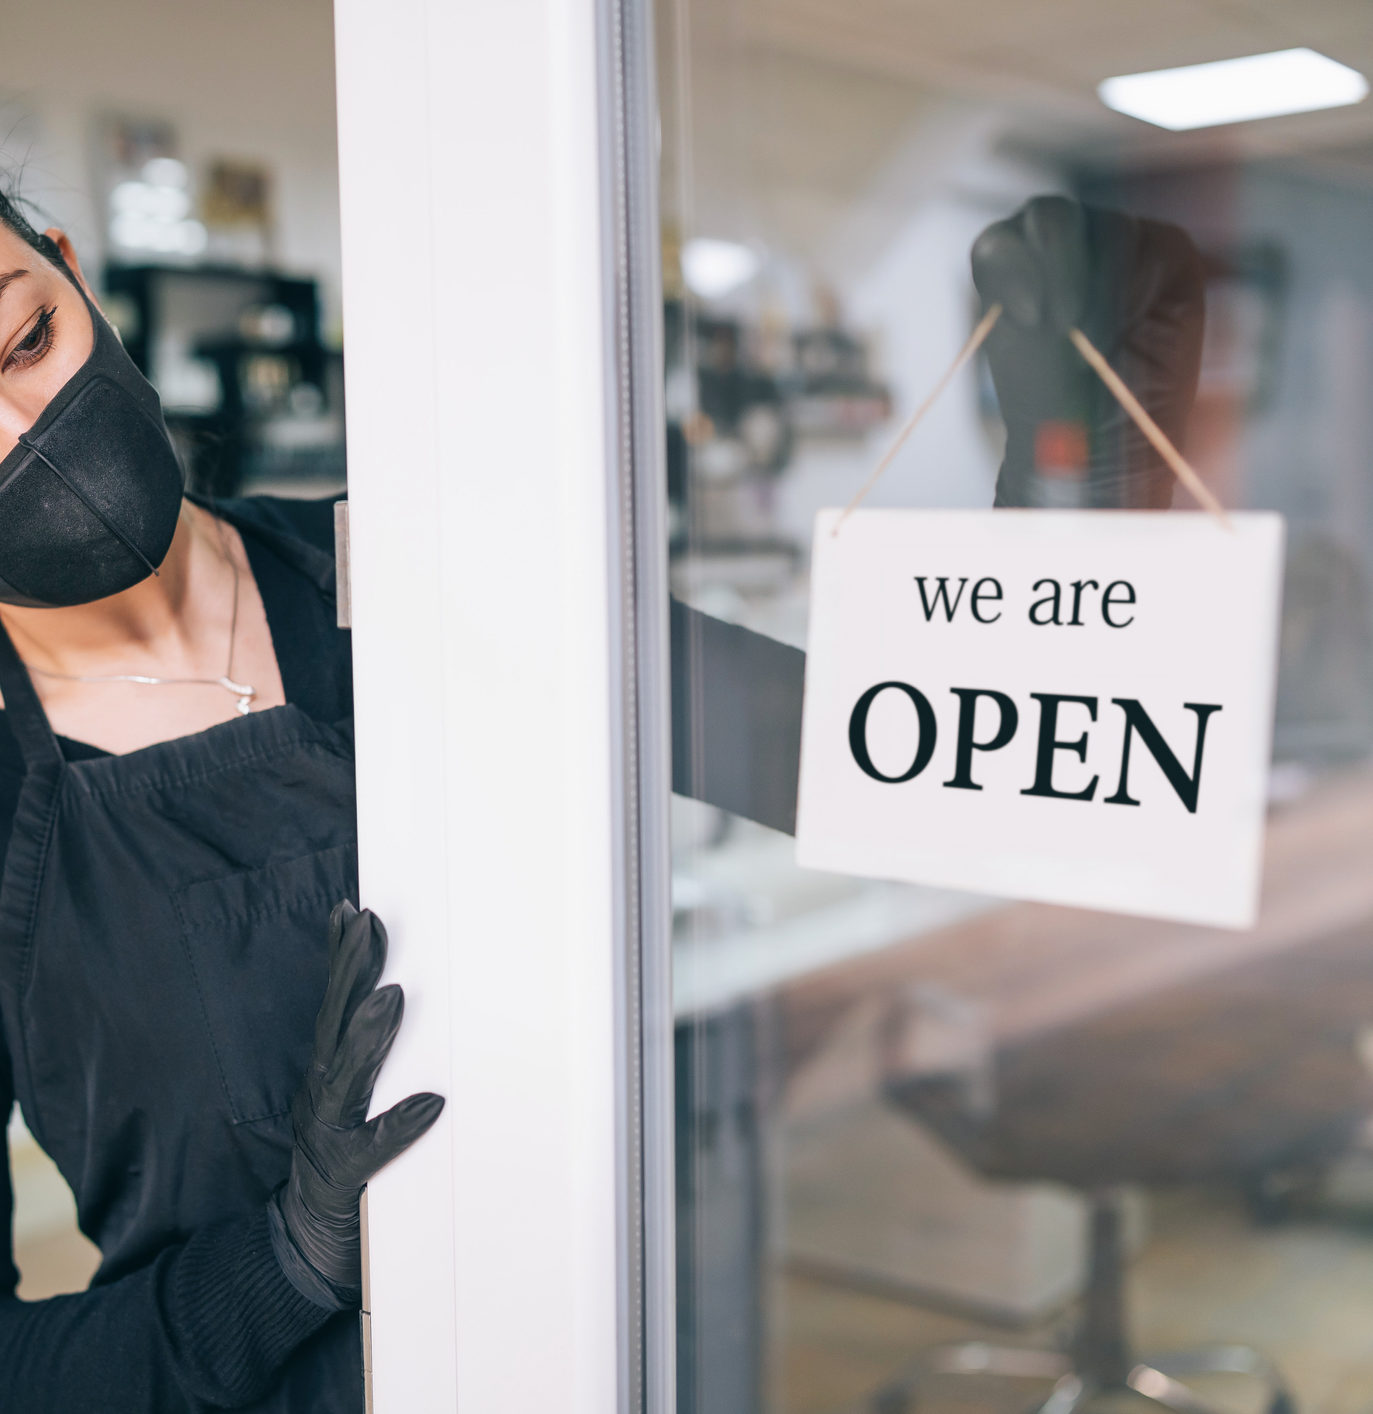 Recently reopened your business? Be sure to review your business insurances.